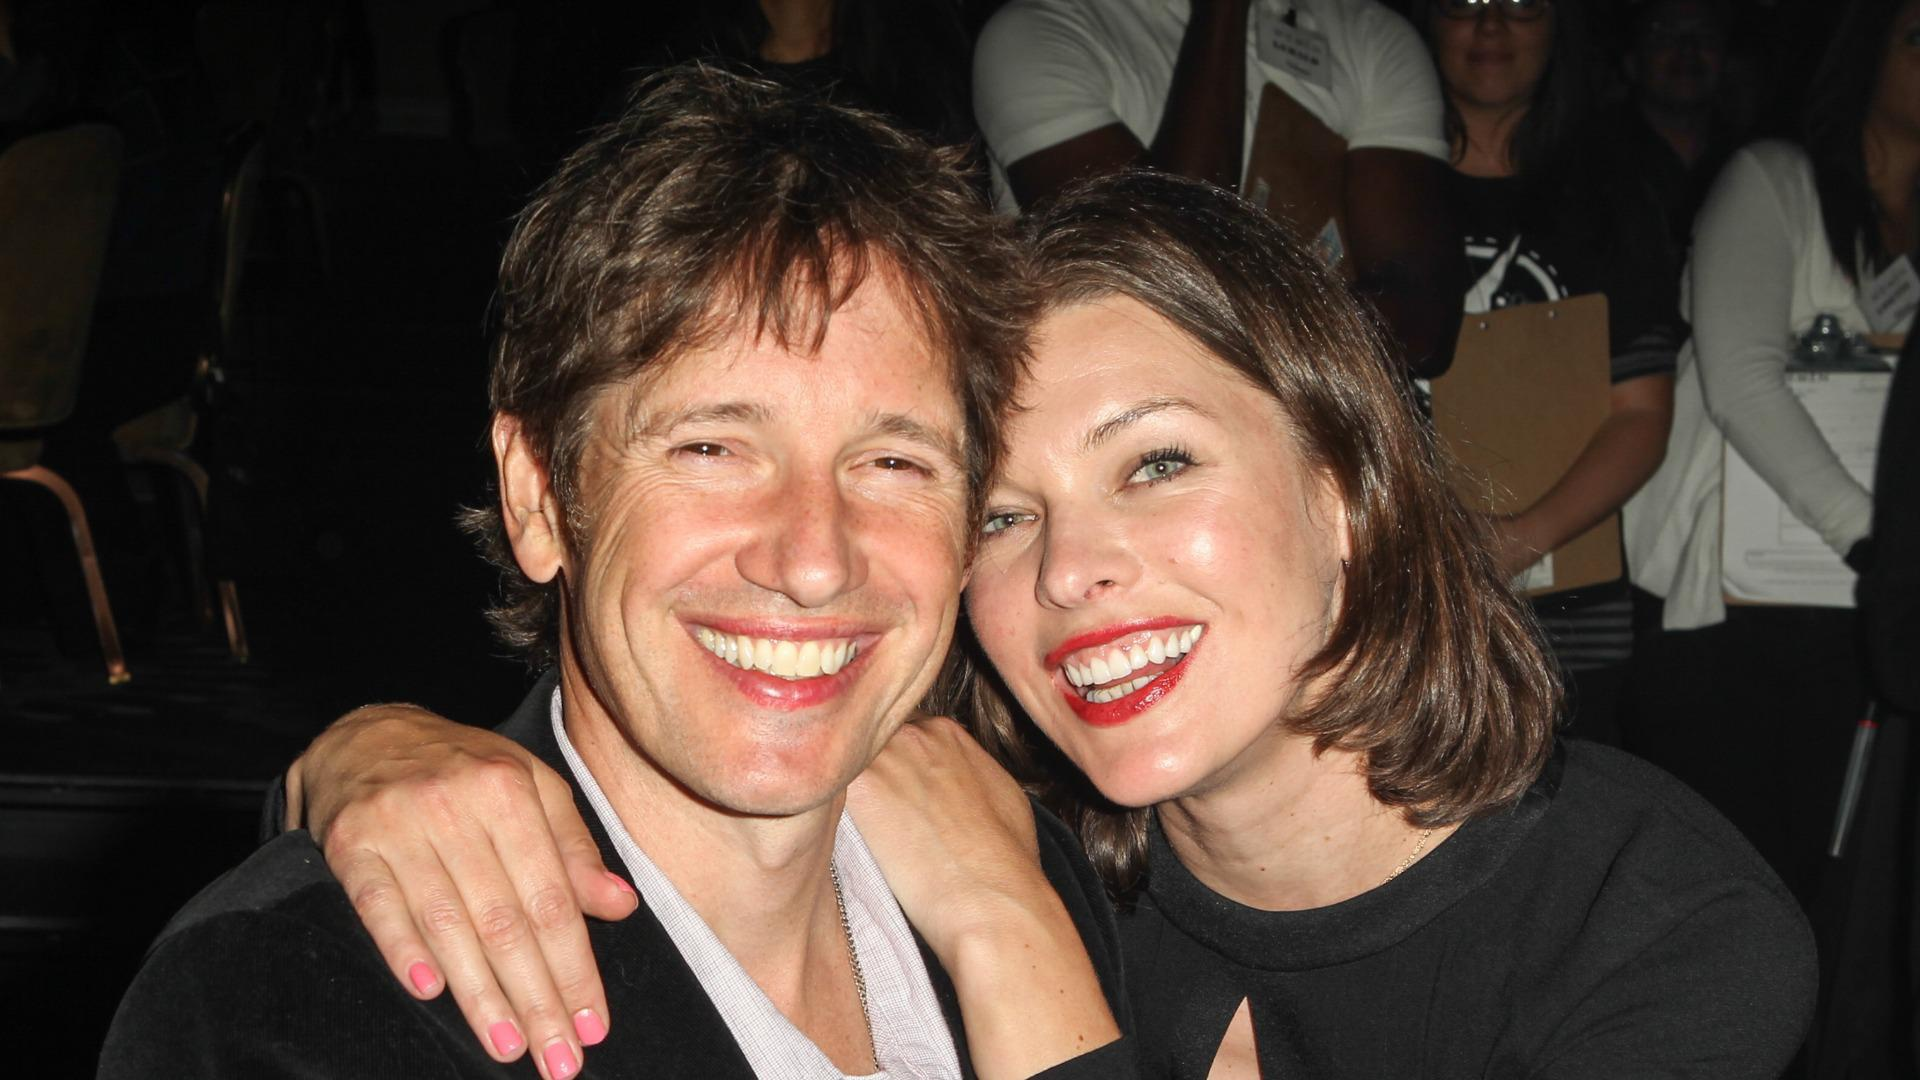 Milla Jovovich and Paul W.S. Anderson expecting second child